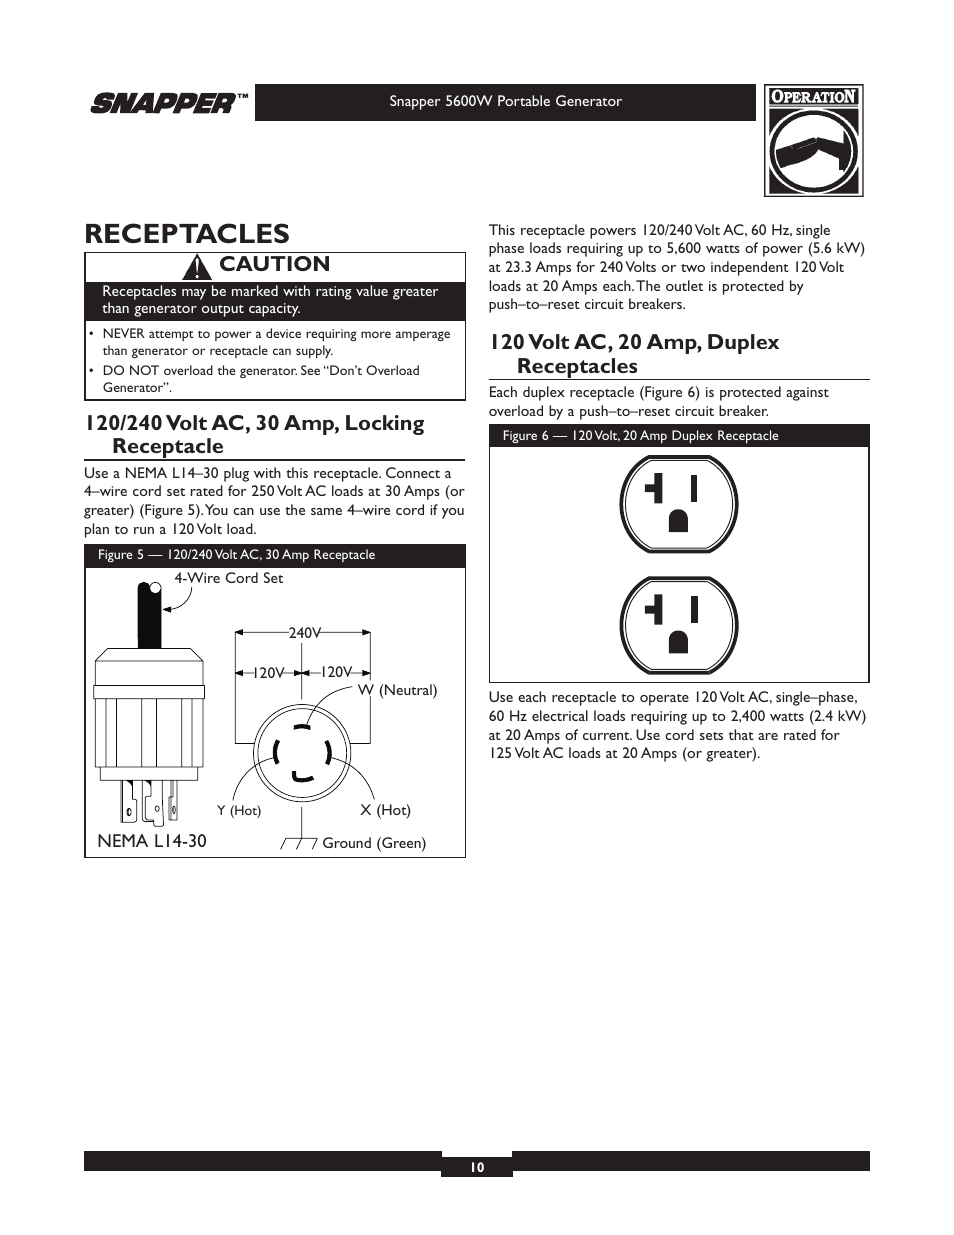 Receptacles Caution Snapper 5600 User Manual Page 10 28 Wiring A L1430 Plug